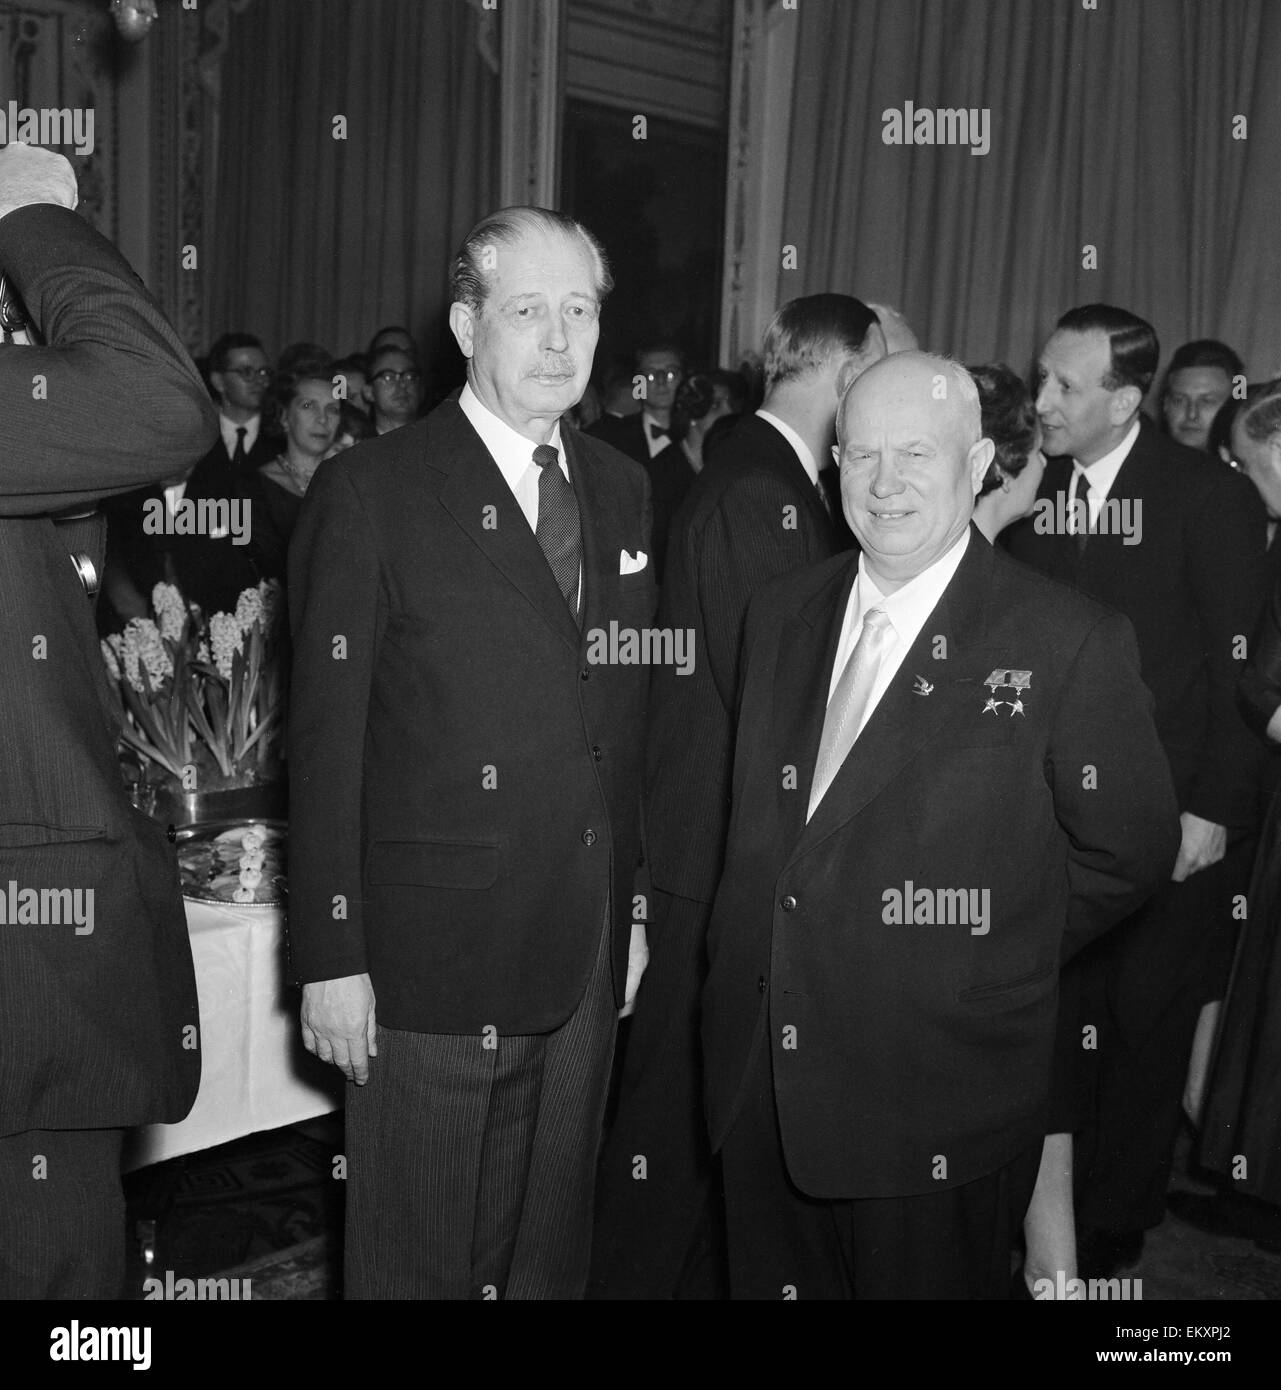 Harold MacMillan talks with Kruschev and Mickoyan. MacMillan and Kruschev at the British Embassy. 25th February - Stock Image